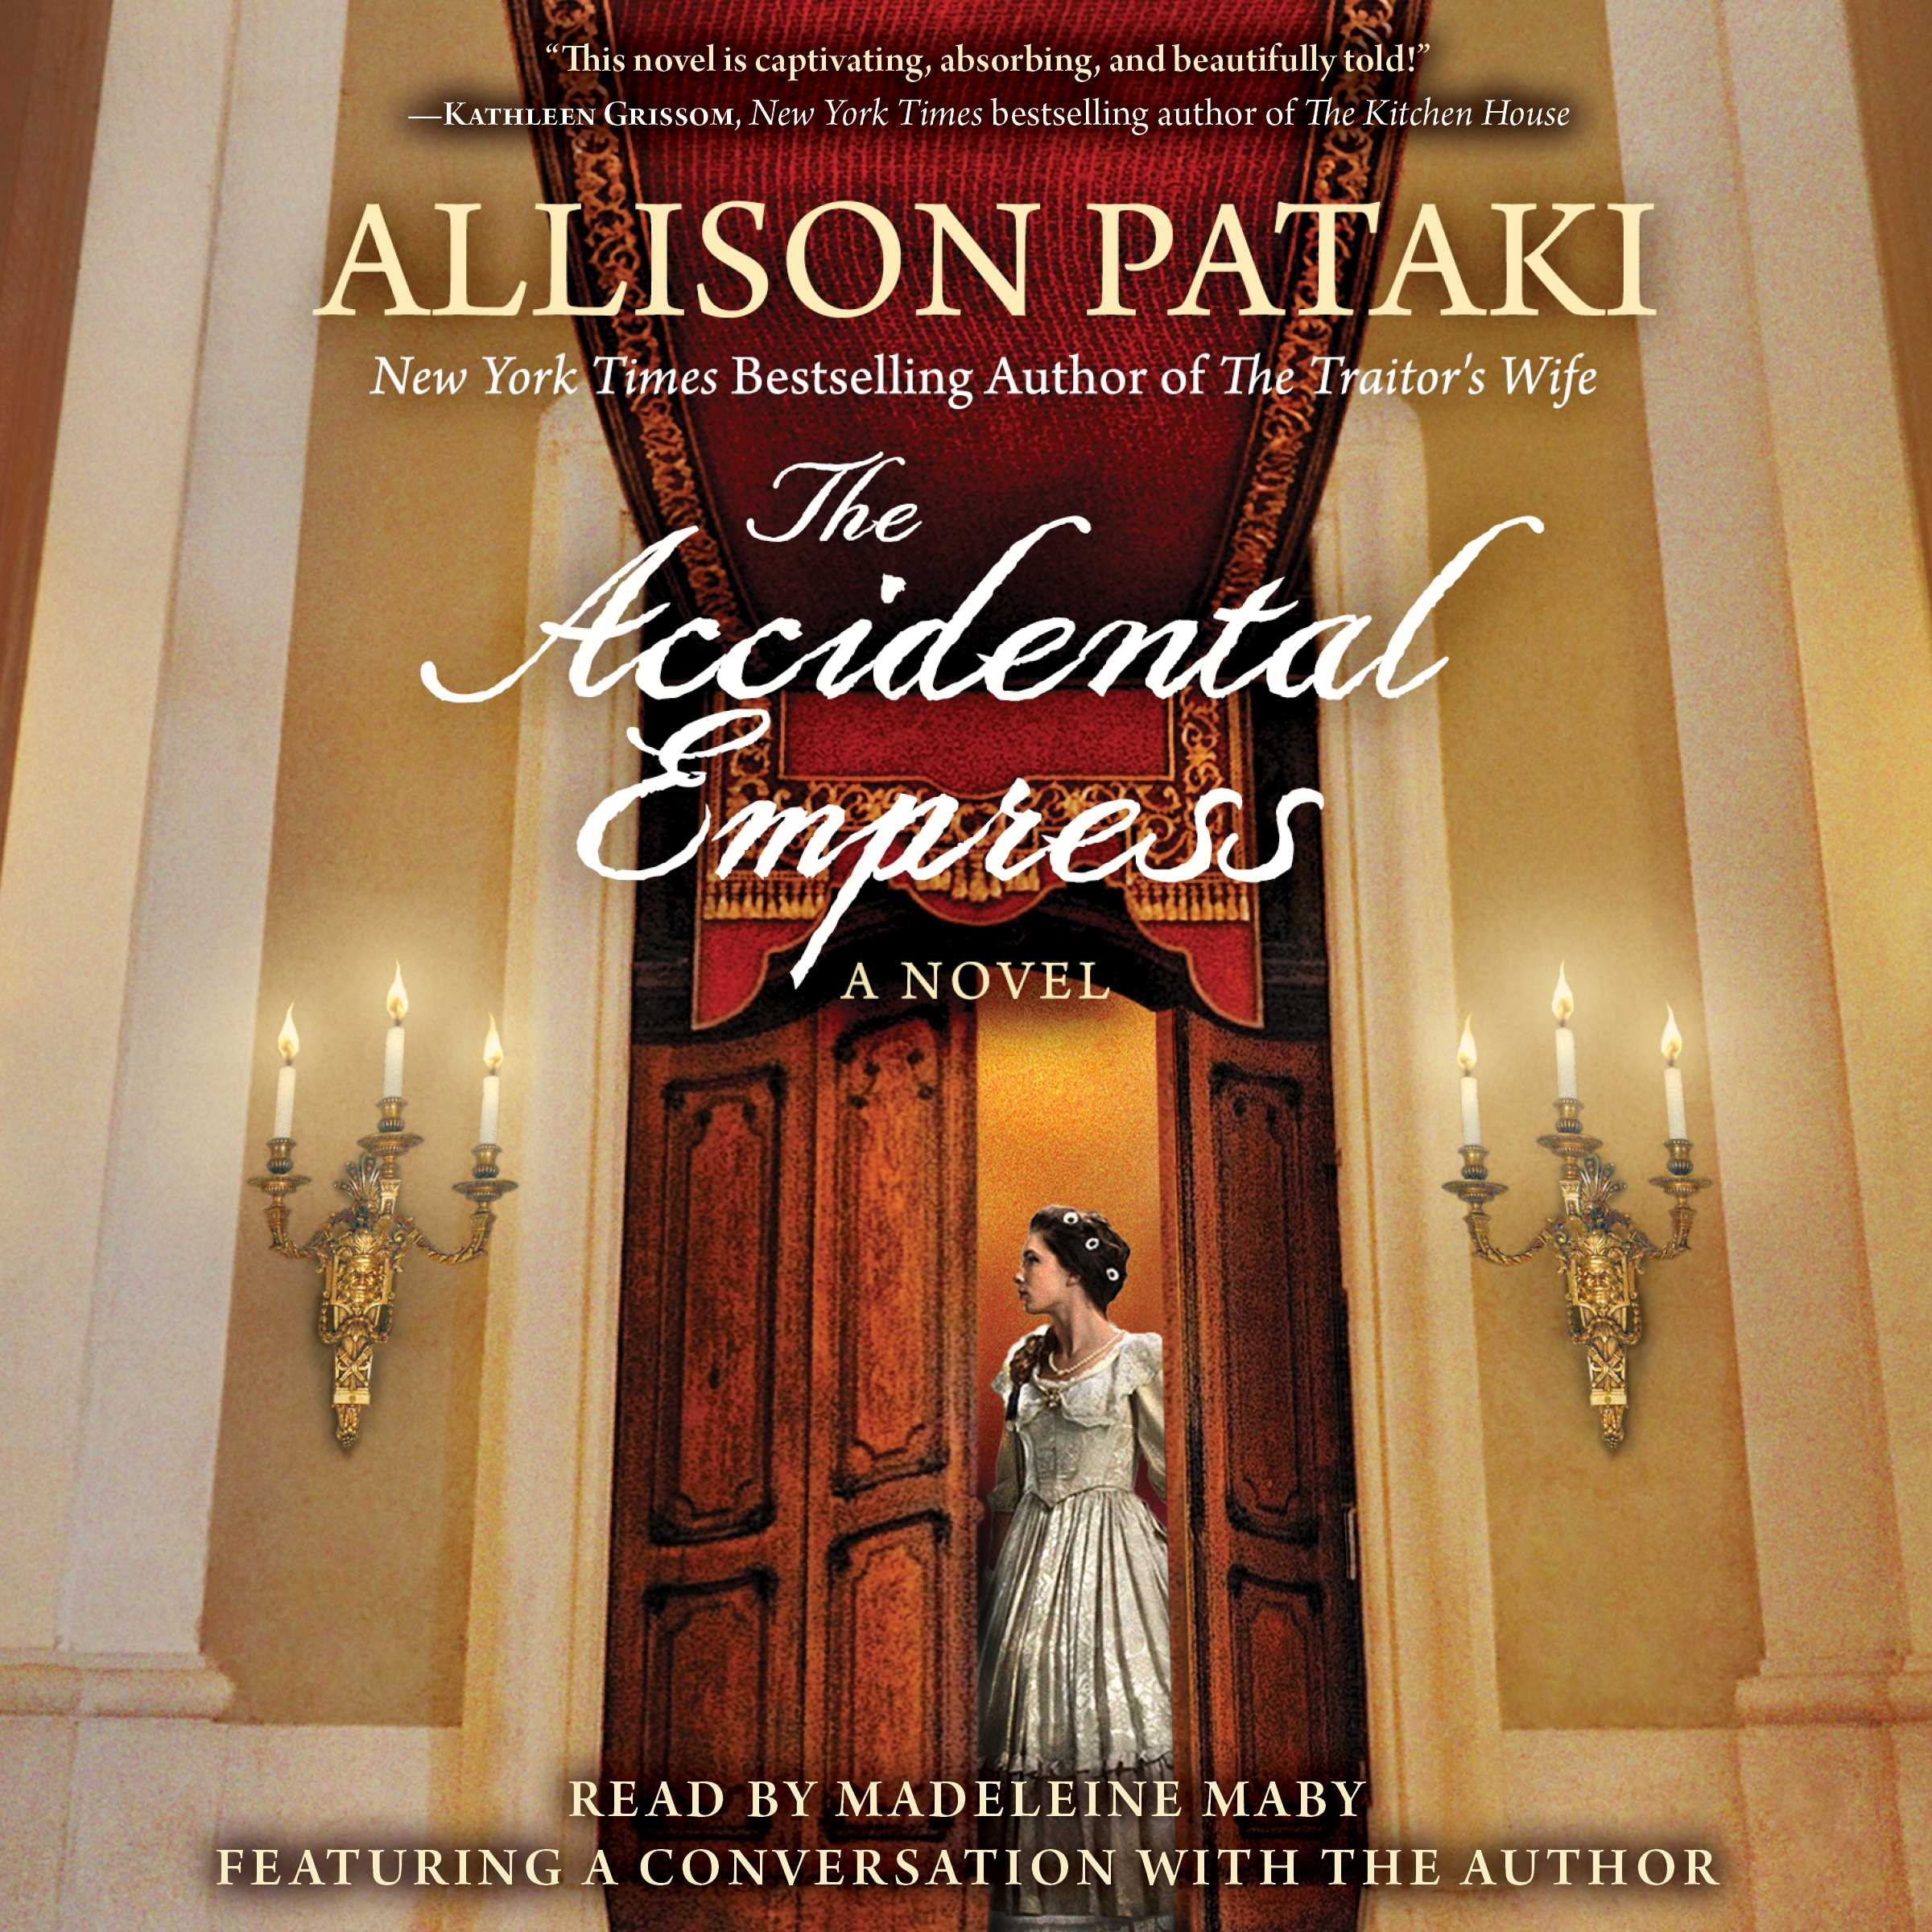 The Accidental Empress Audiobook By Allison Pataki Madeleine Maby